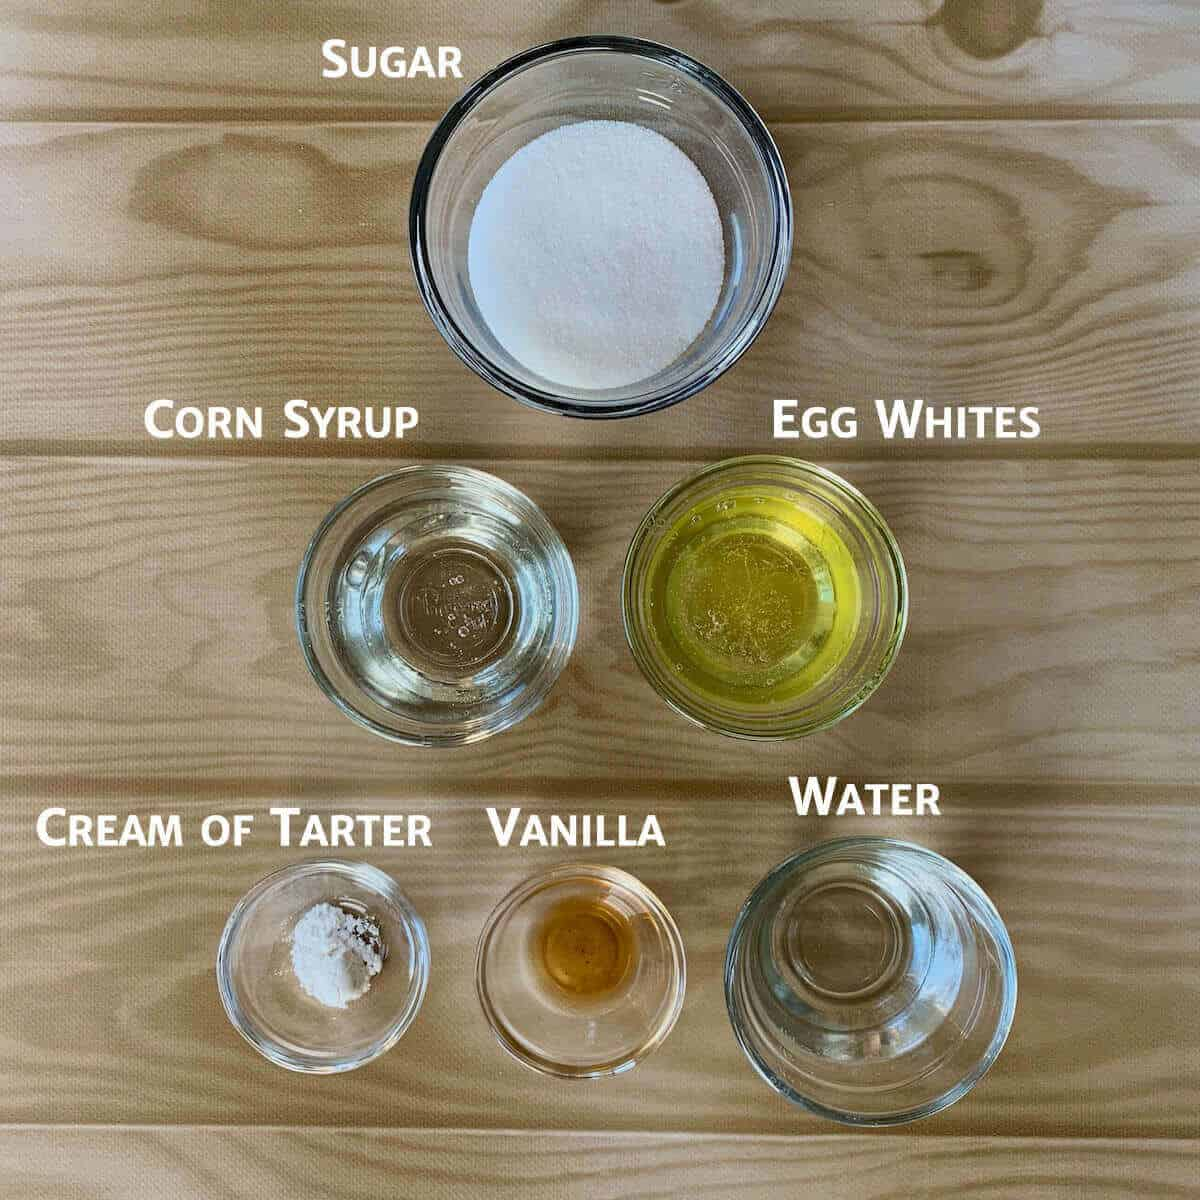 Marshmallow Creme ingredients in glass bowls on a table.